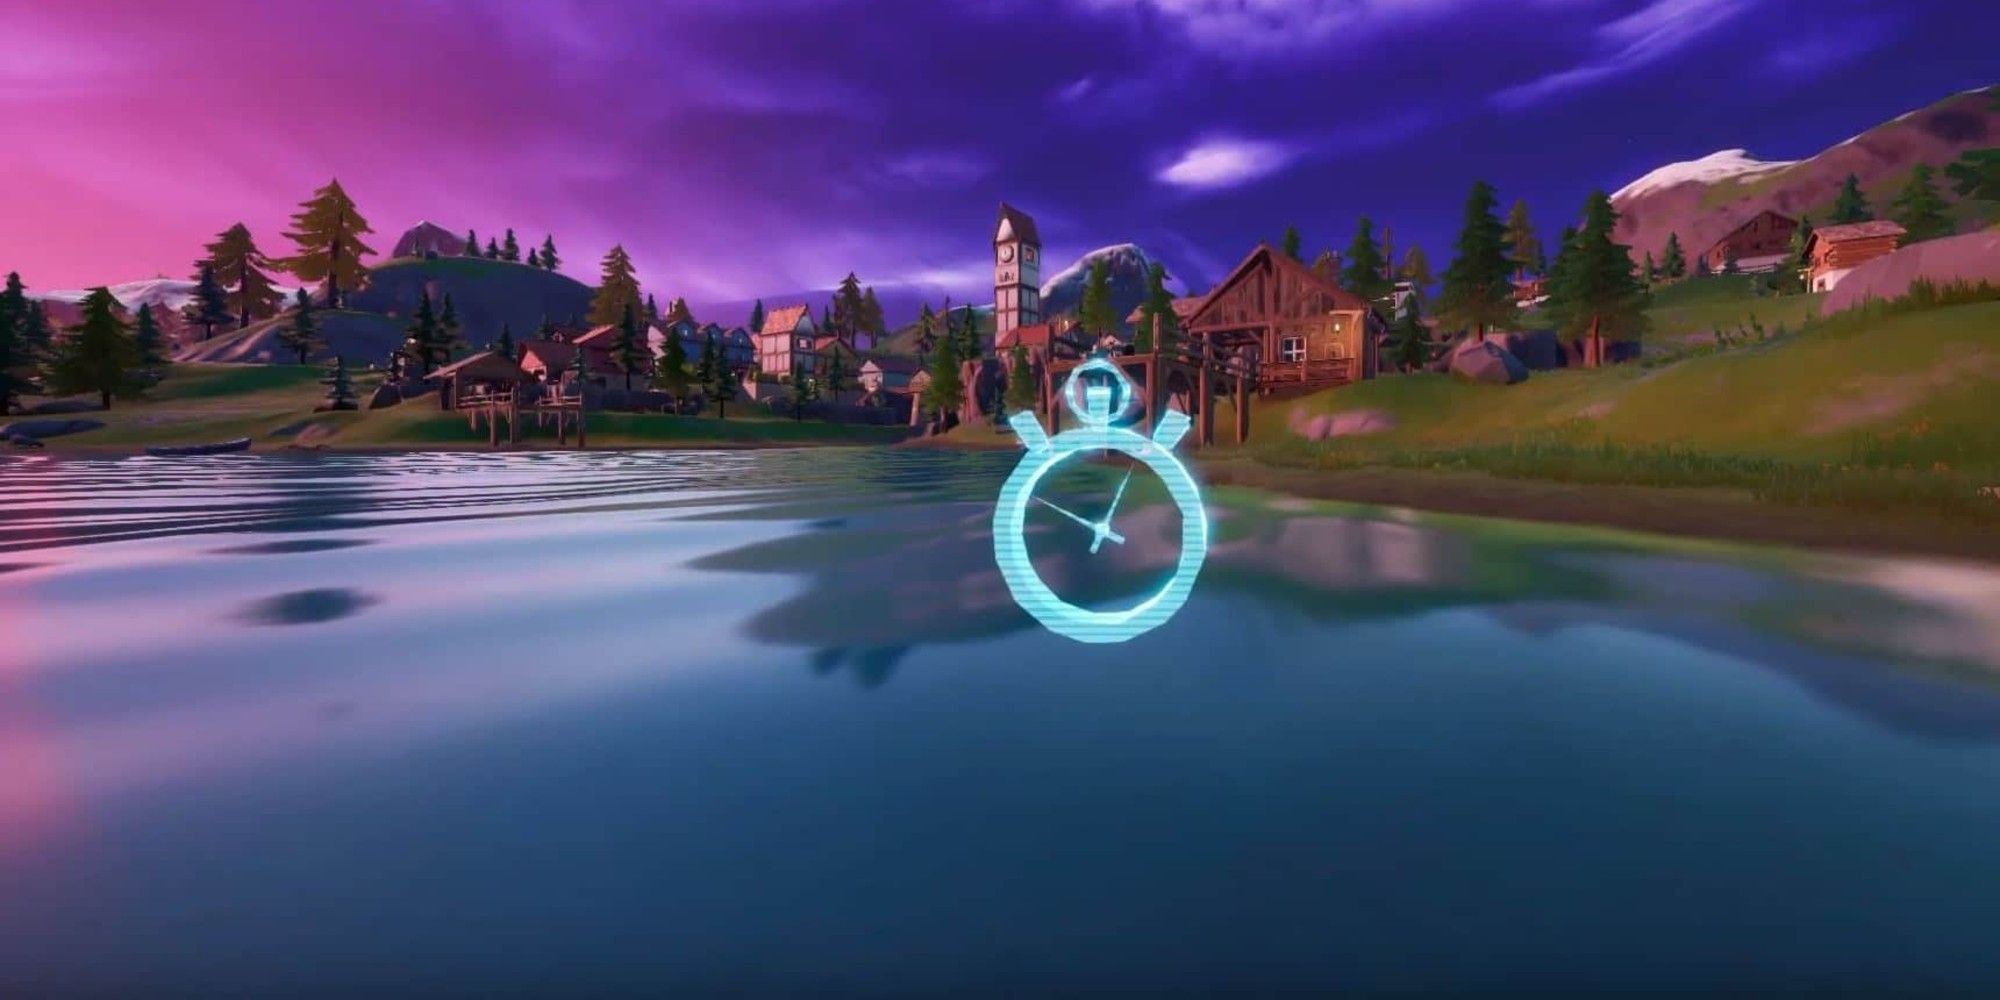 Fortnite Season 6 Time Fortnite How To Complete The Swimming Time Trial At Weeping Woods Or Coral Castle Informone